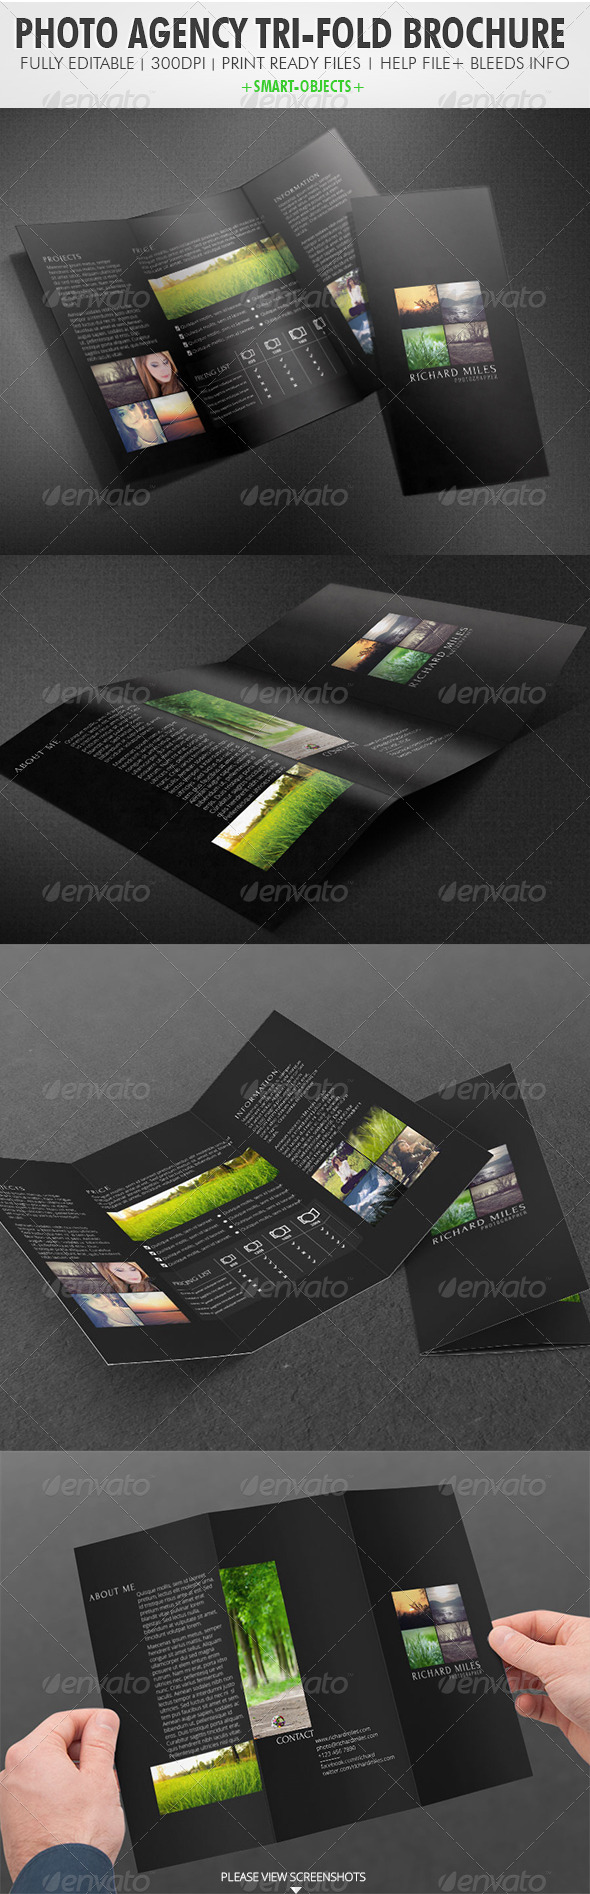 Photo Agency Tri-fold Brochure - Catalogs Brochures